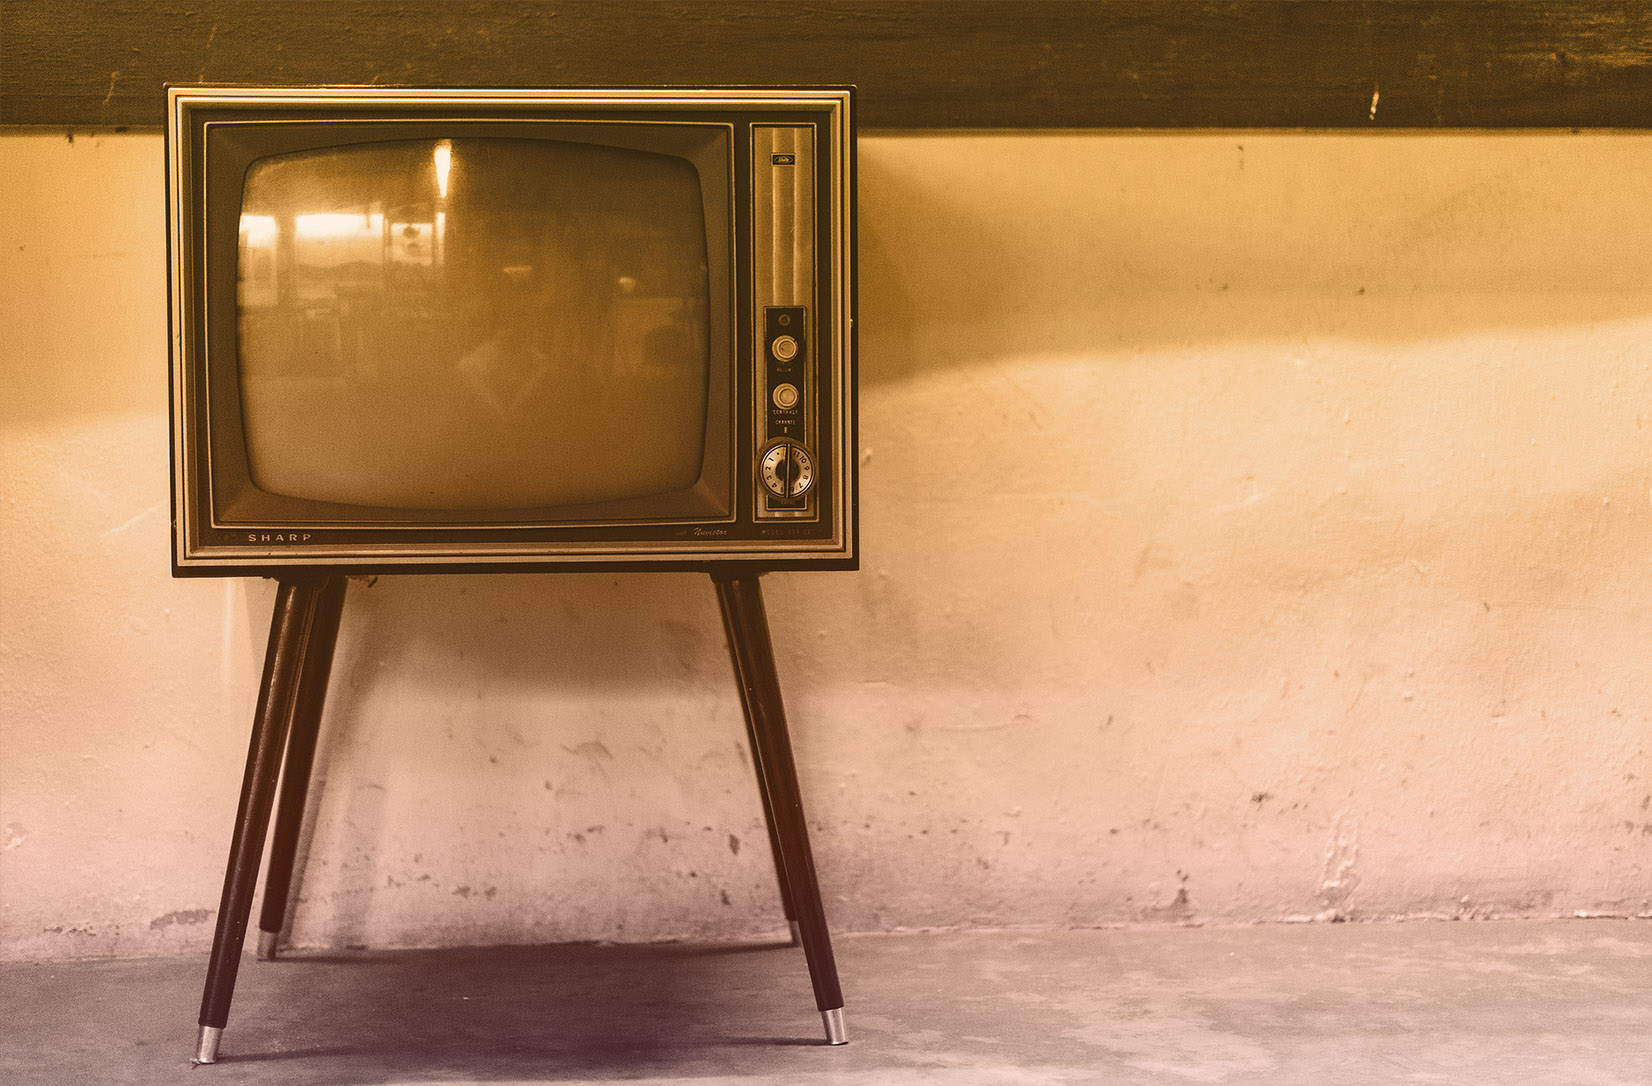 Traditional TV Has Become a Downtrend